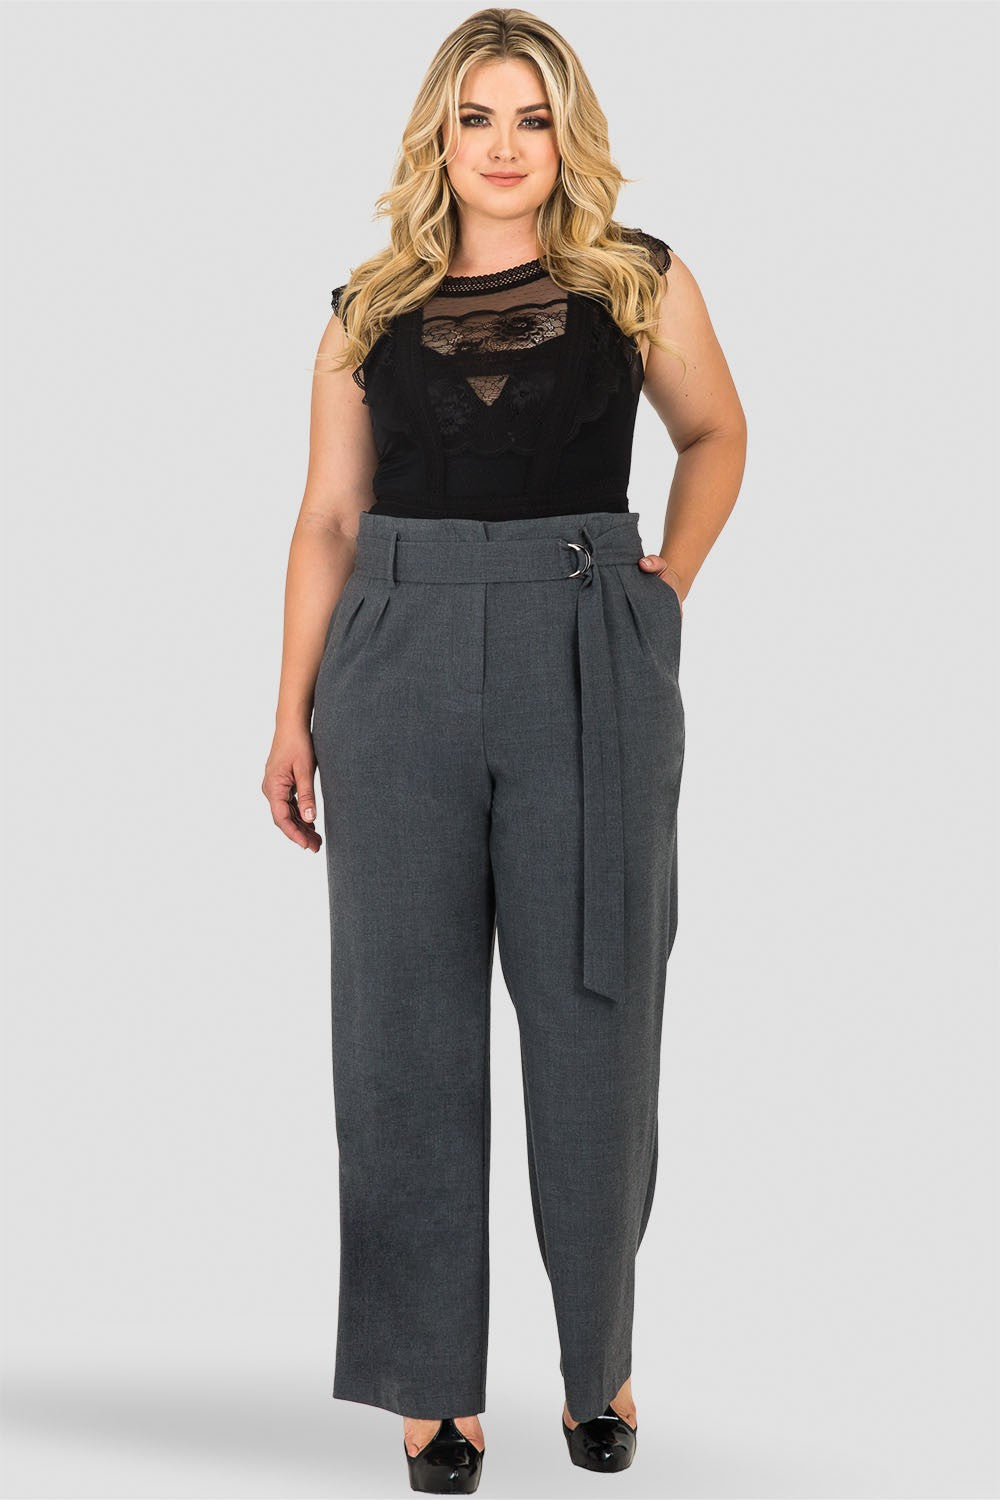 Plus Size Franchesca D-Ring Belt Straight Leg Paper Bag Waist Pants - Charcoal Gray